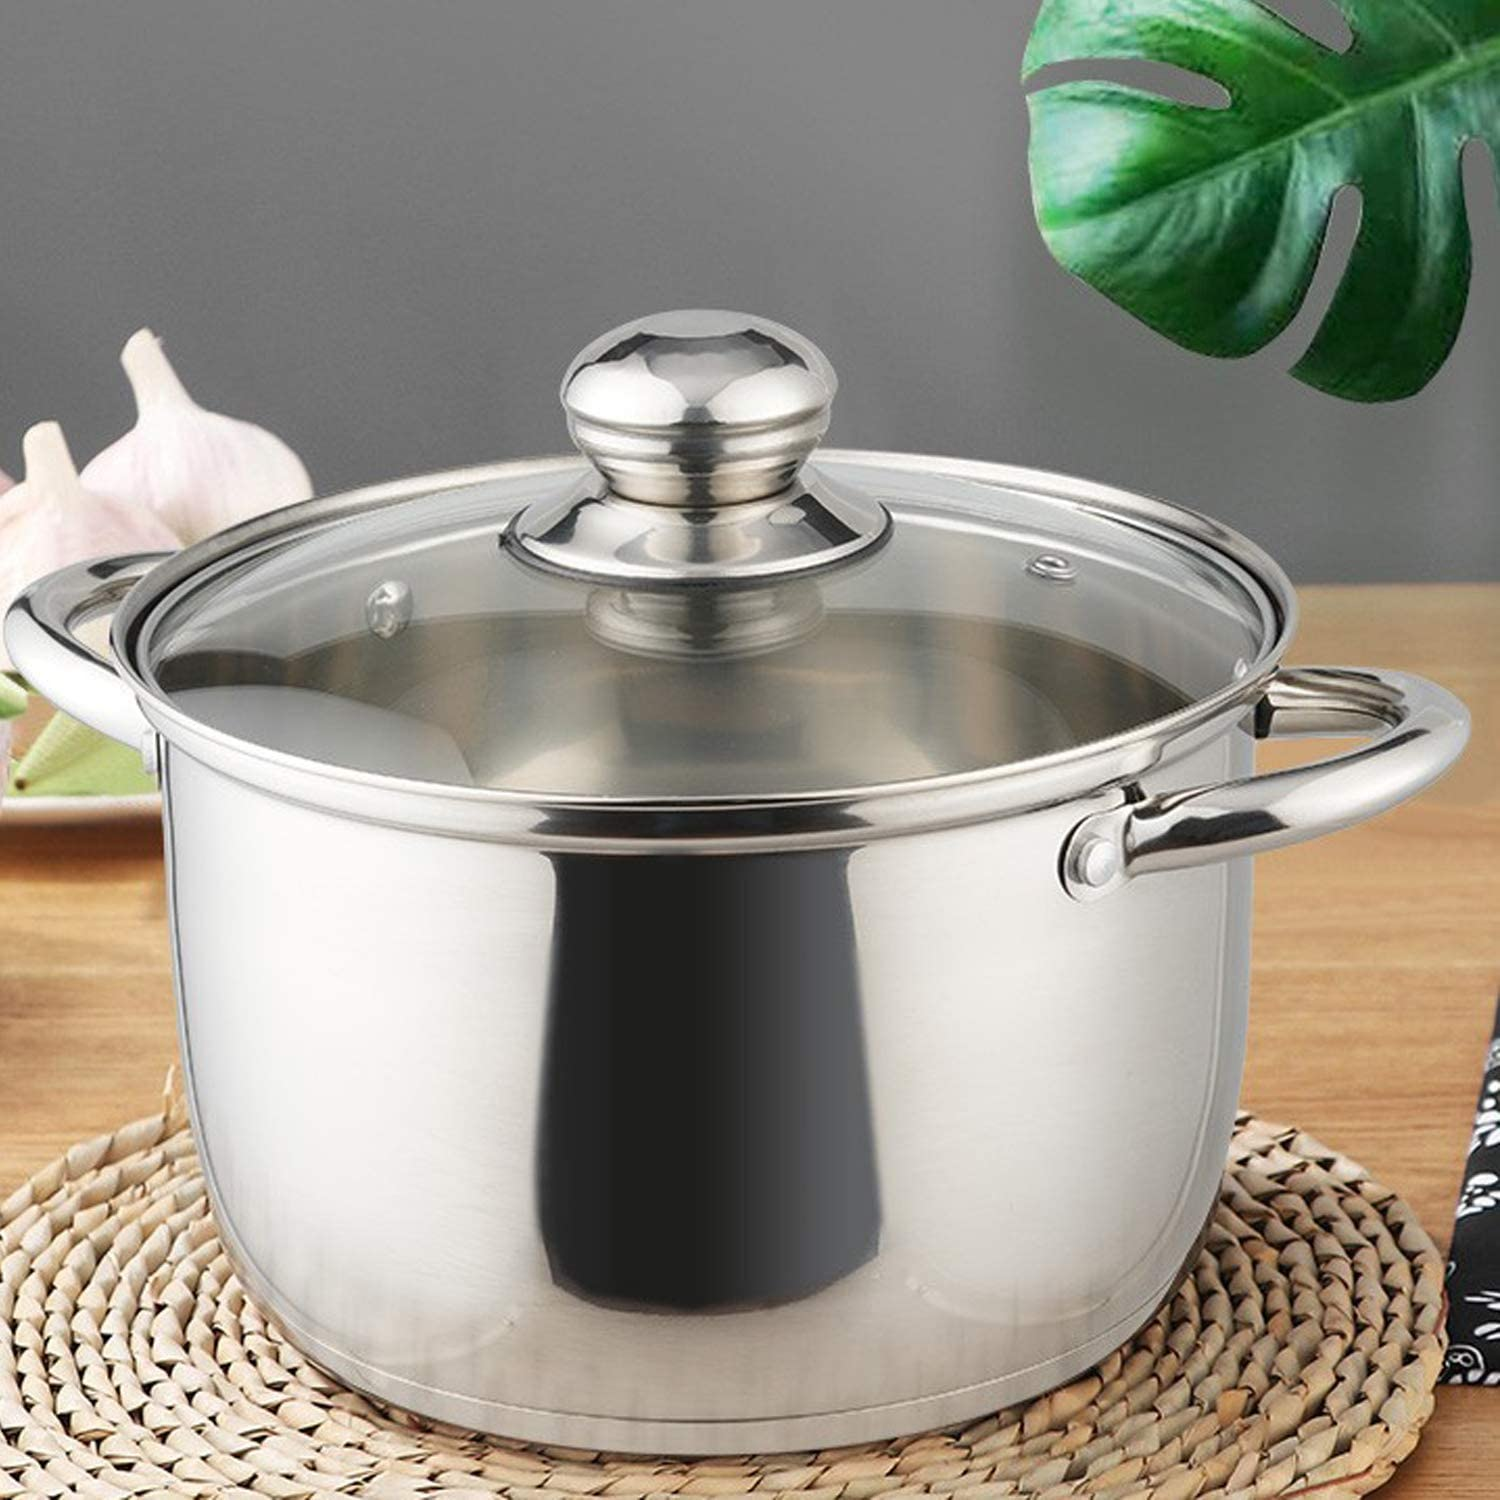 Double Happiness 3.5 Quart Stainless Steel Stock Pot Soup Pasta Pot with Lid Non Toxic /& Easy Clean-Silver Heat Proof Handles